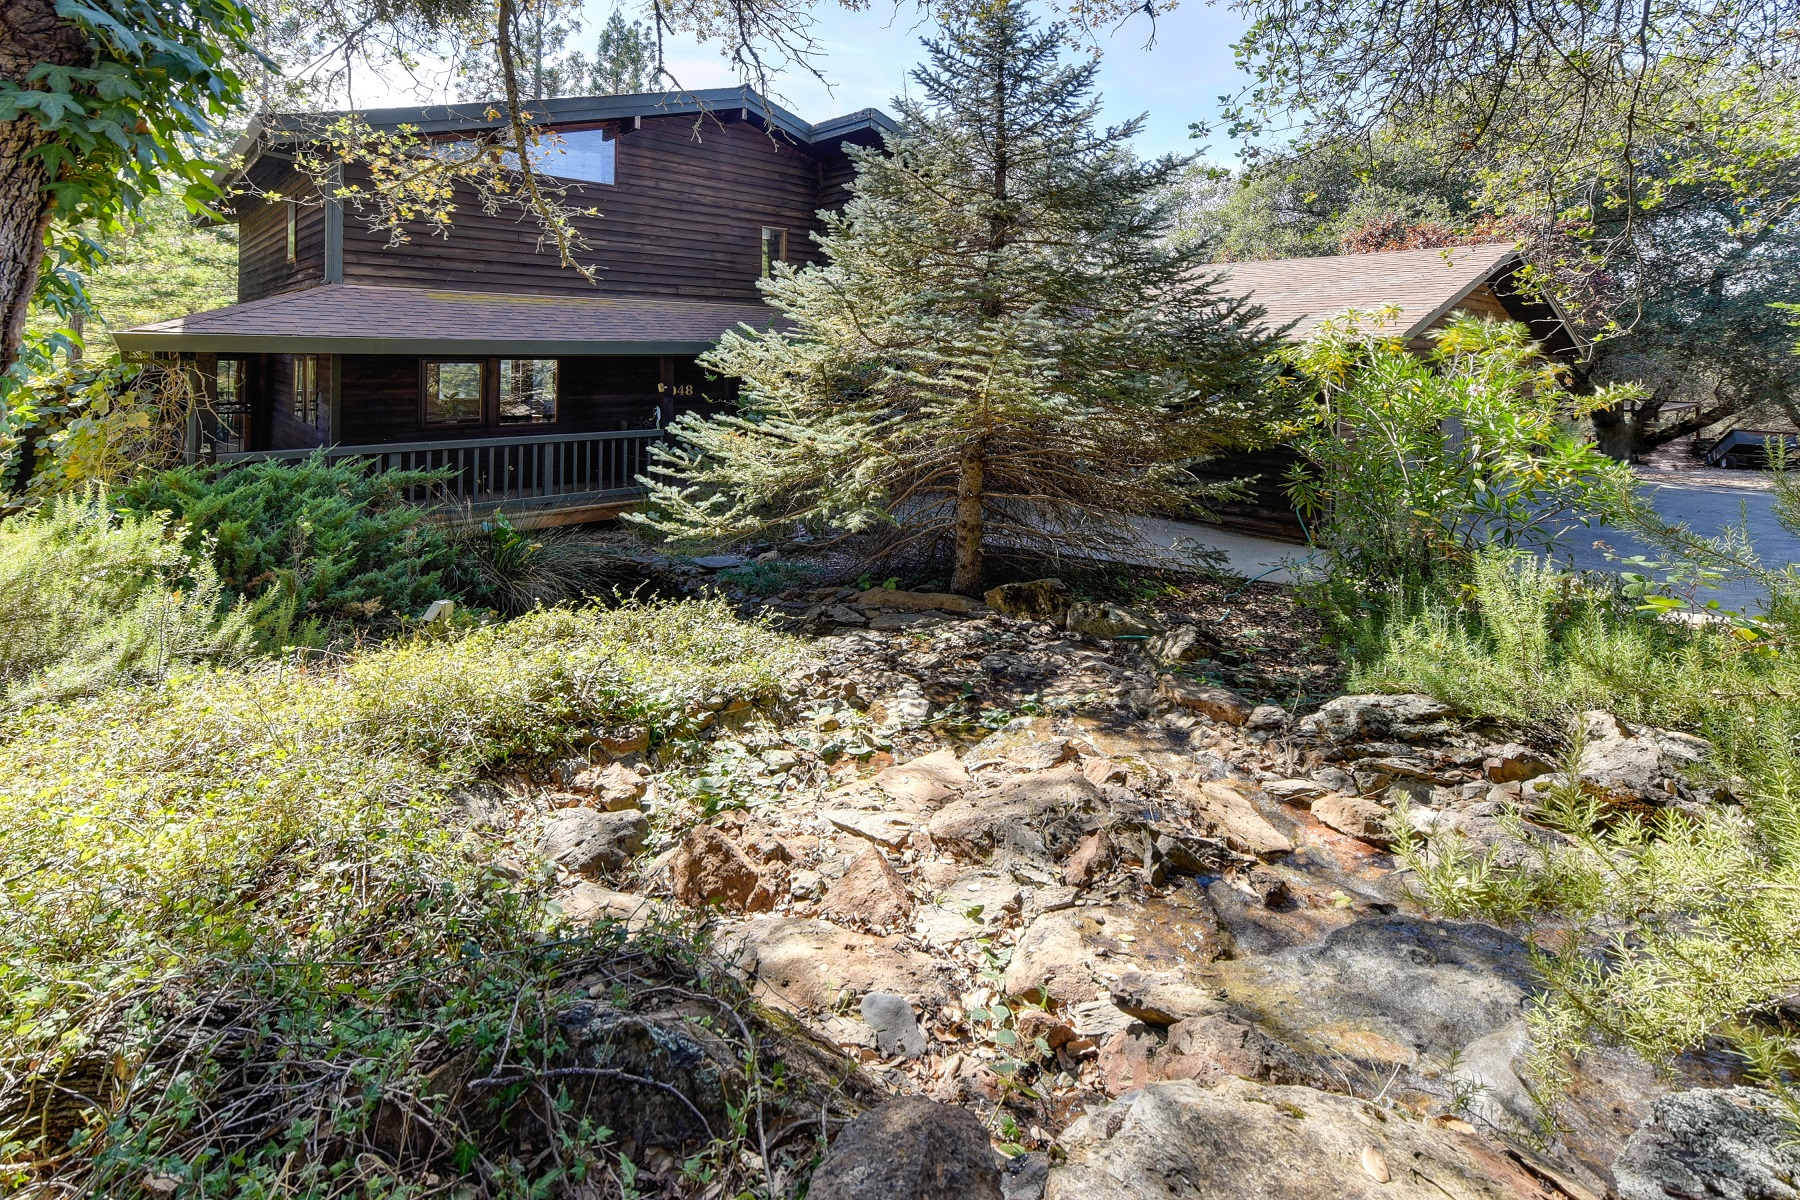 Single Family Home for Active at 3048 Stagecoach Road, Placerville CA 95667 3048 Stagecoach Road Placerville, California 95667 United States